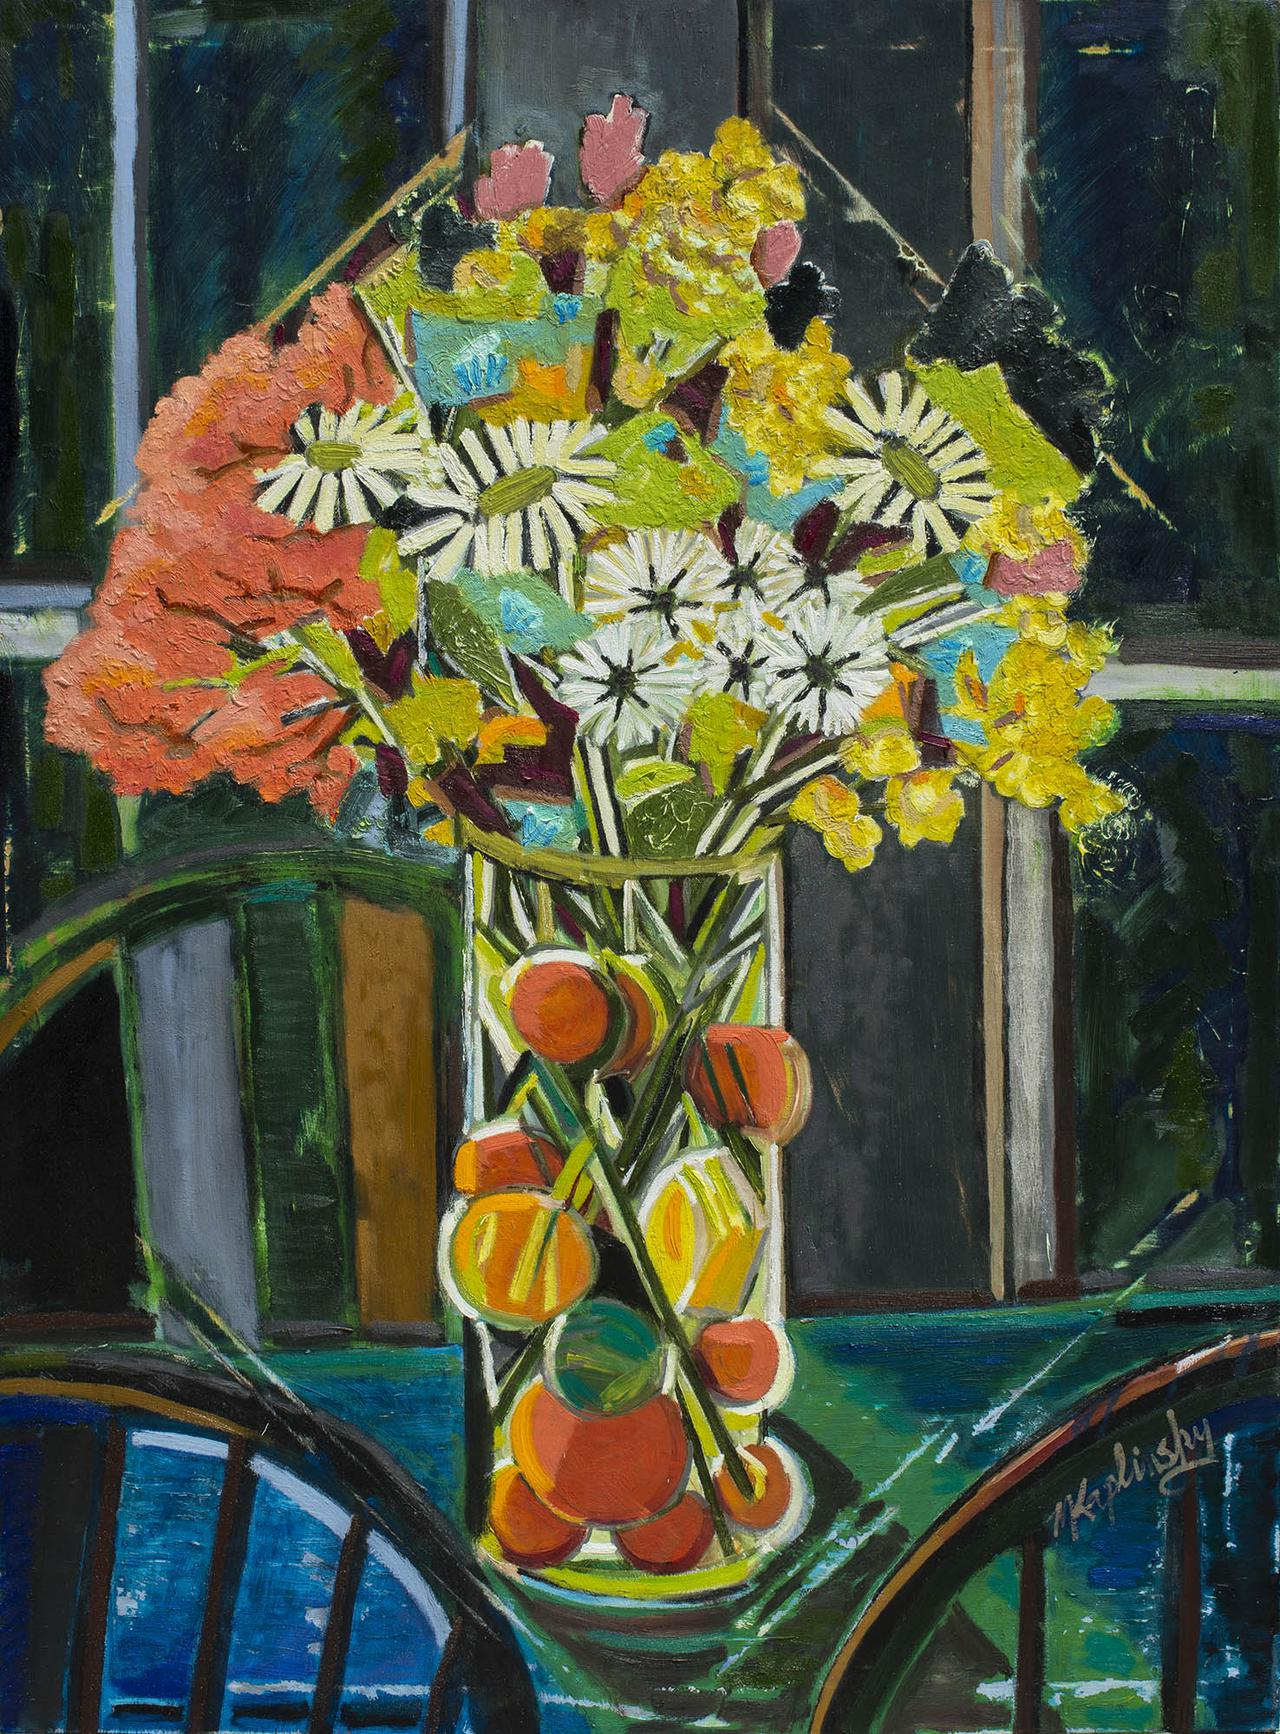 portfolio/Bouquet on the Back Table - 36x48 oil on canvas by Matt Kaplinsky.jpg